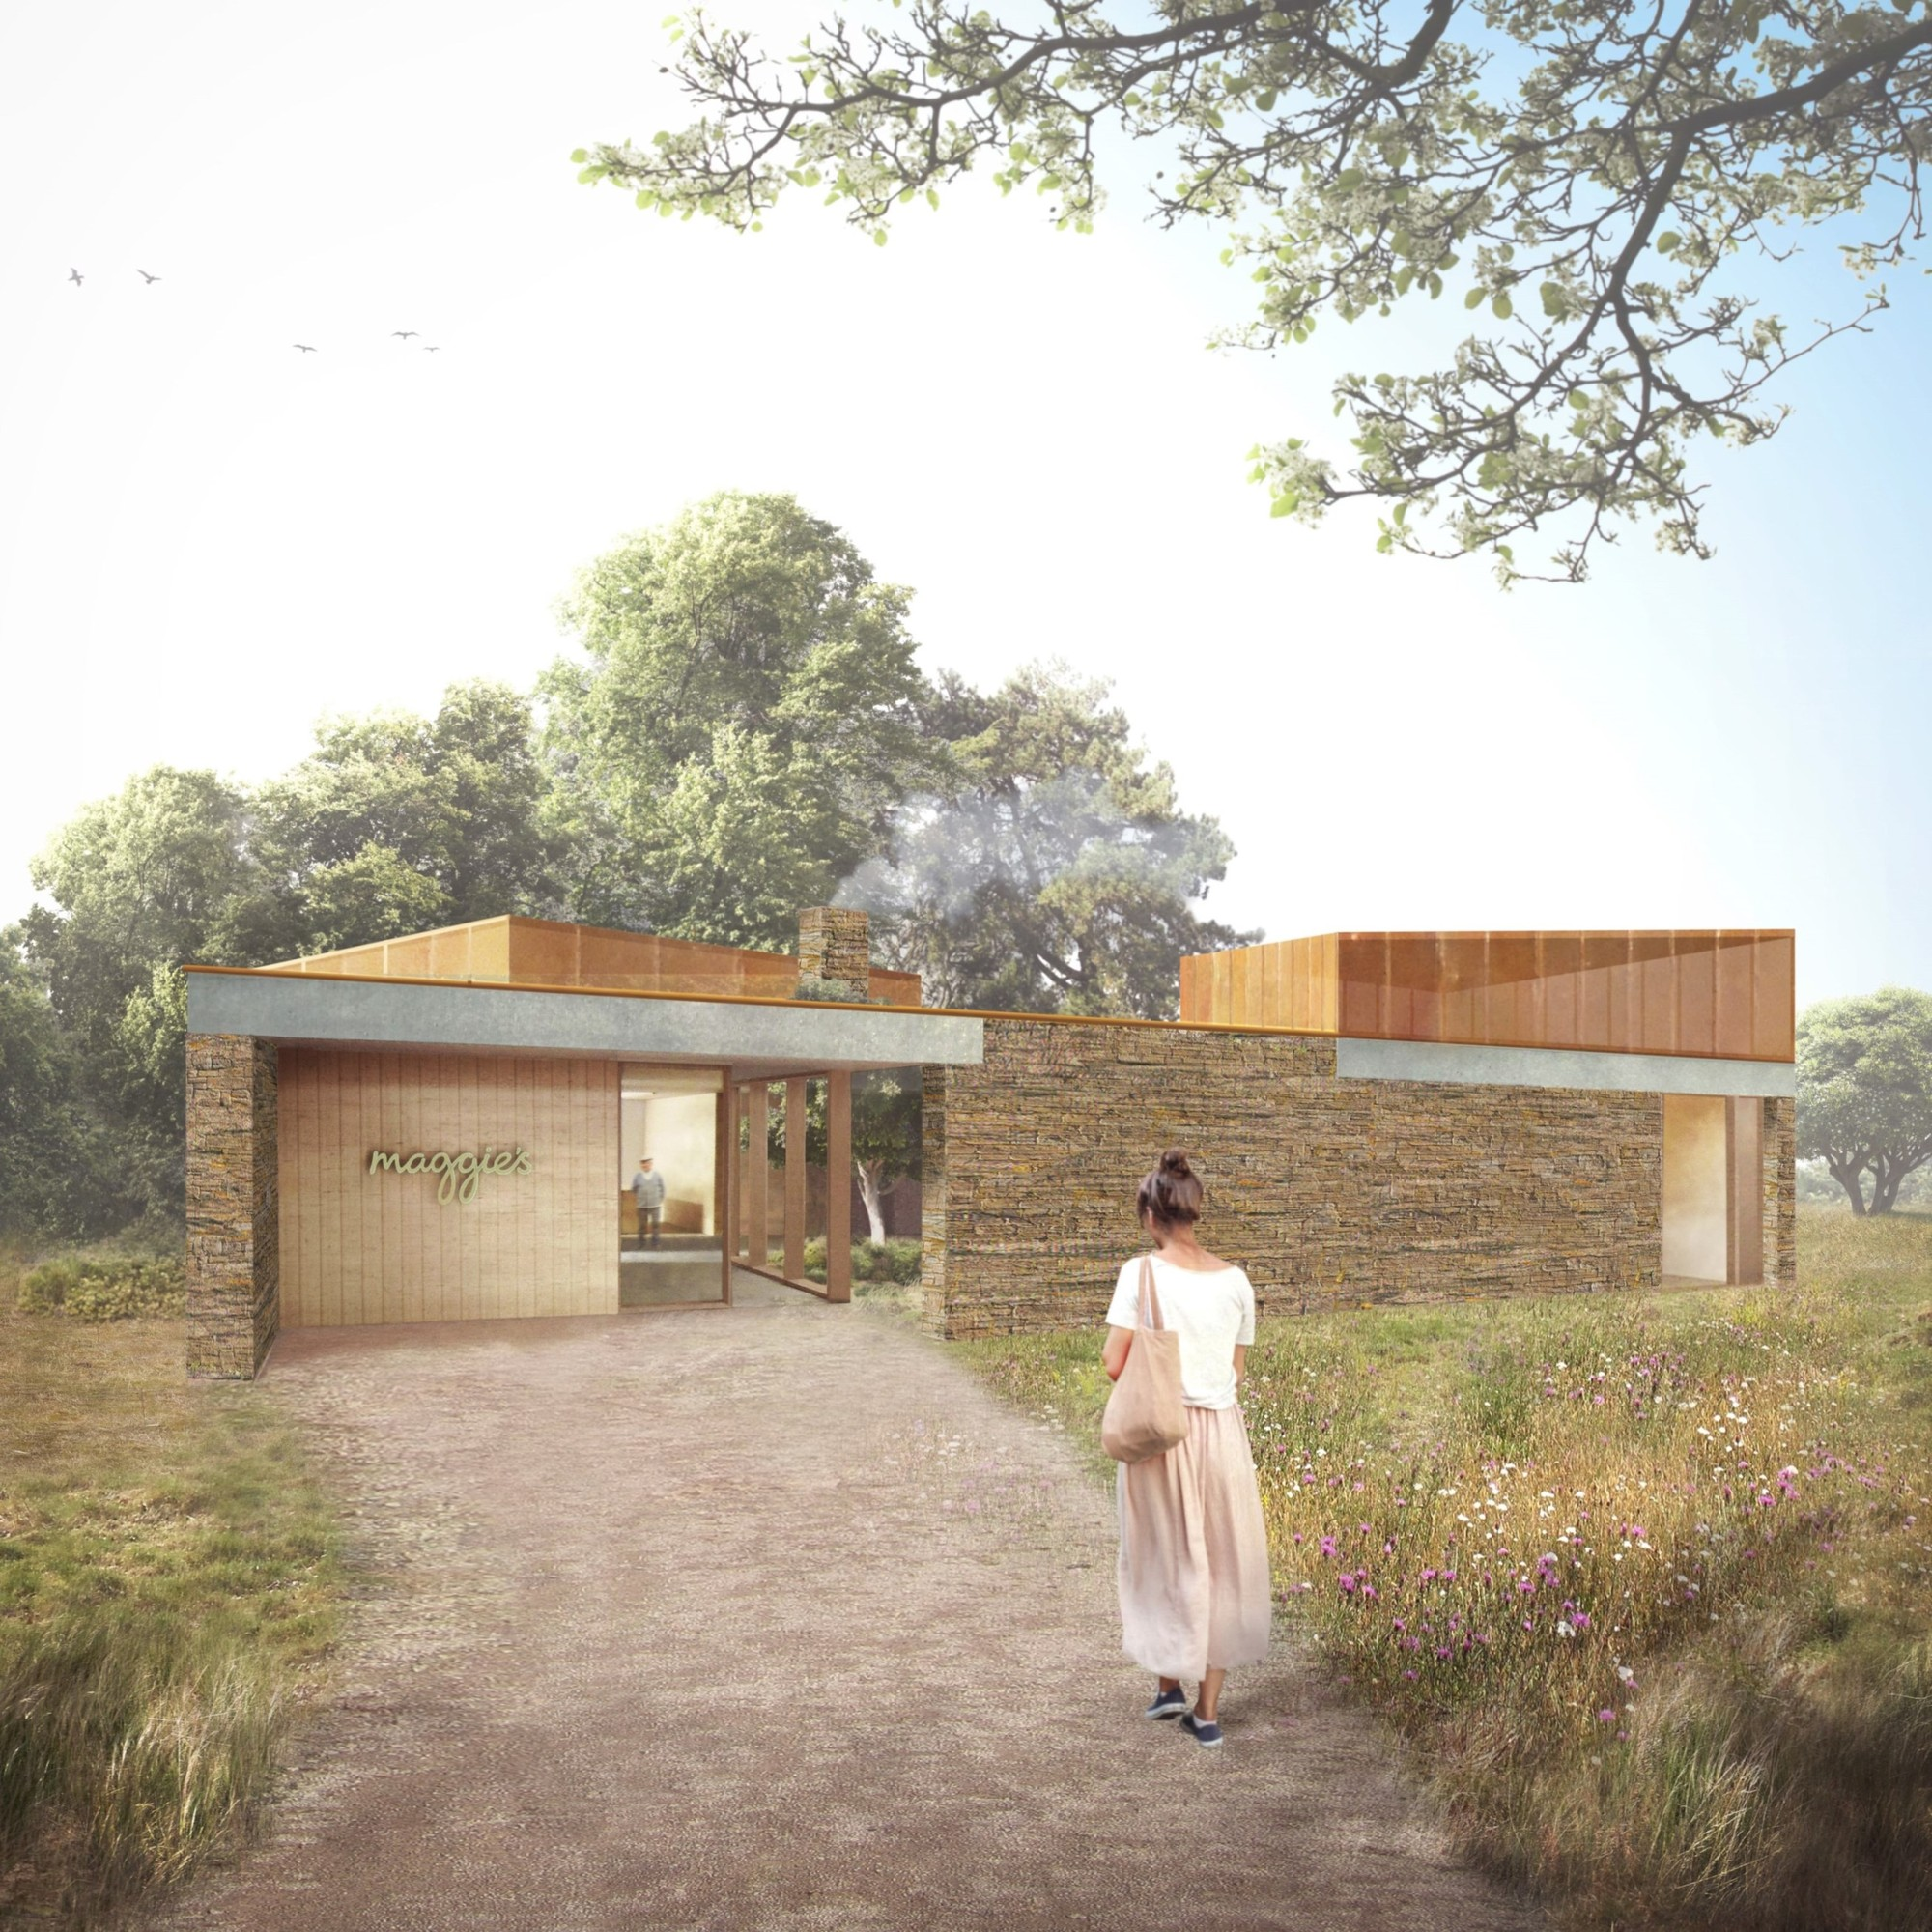 Maggie's Centre Cardiff Receives Planning Permission, Courtesy of Maggie's